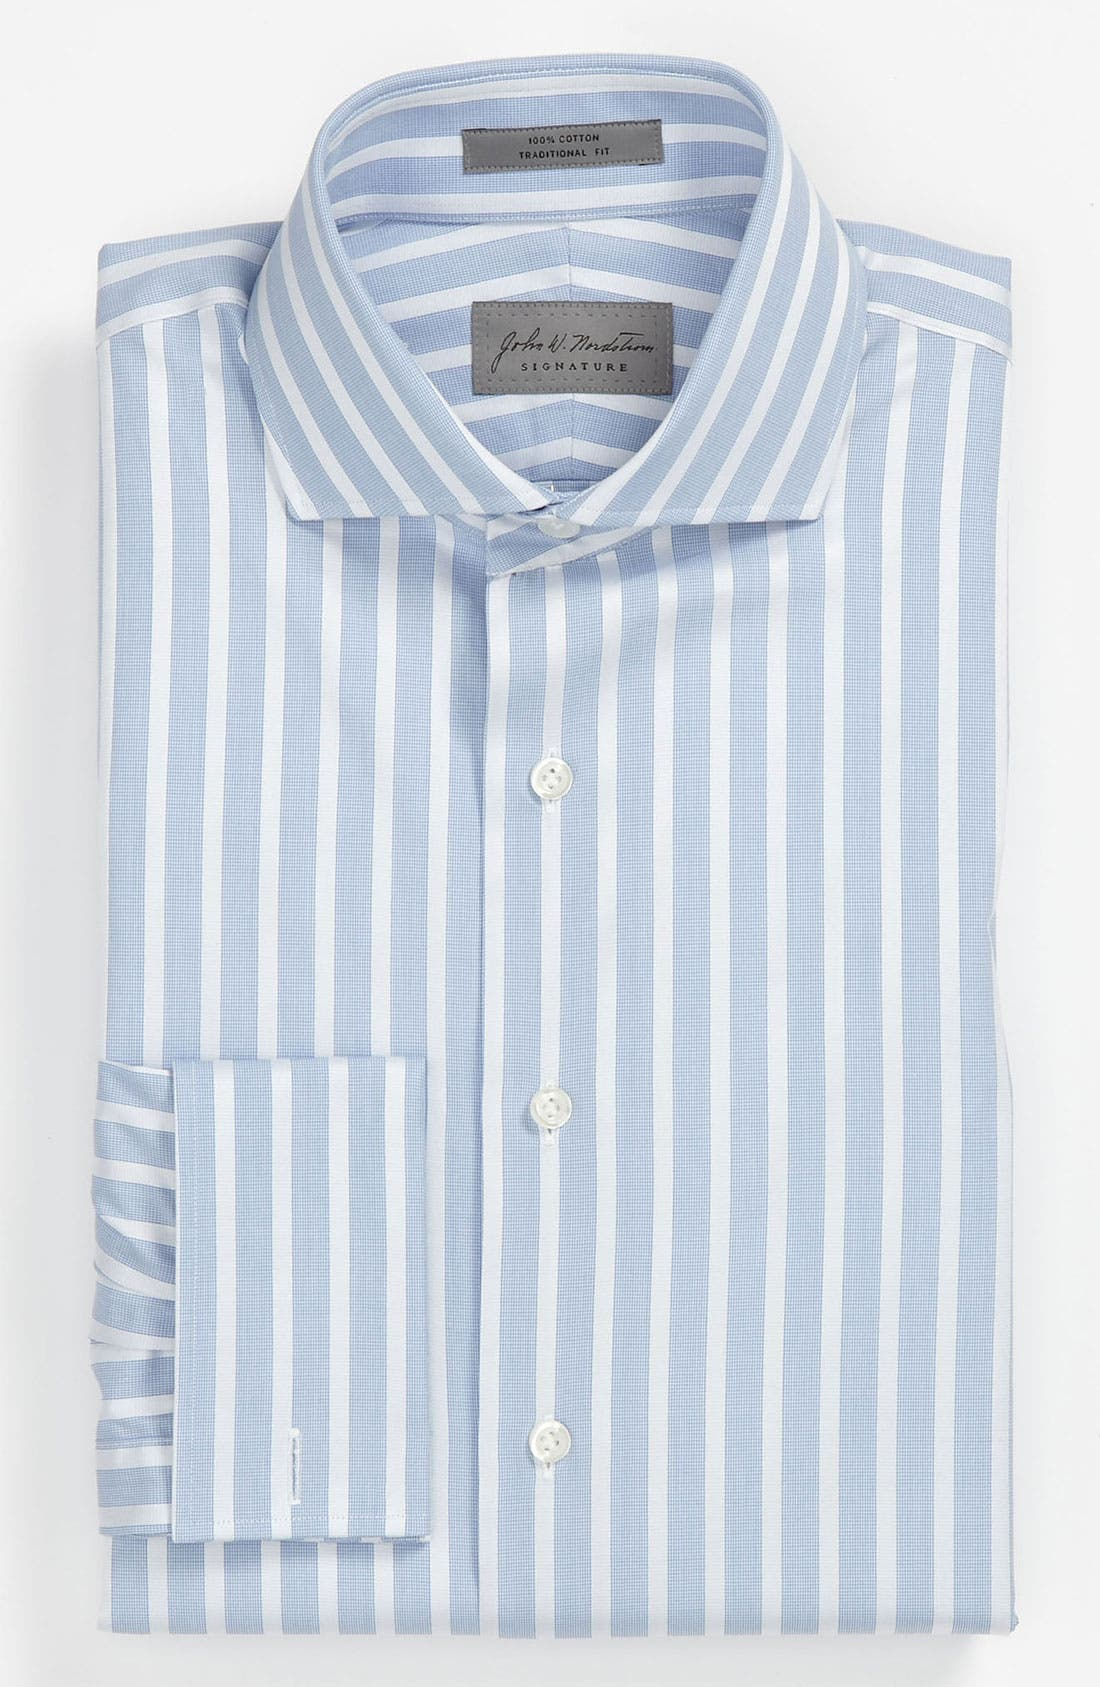 Alternate Image 1 Selected - John W. Nordstrom Signature Traditional Fit Dress Shirt